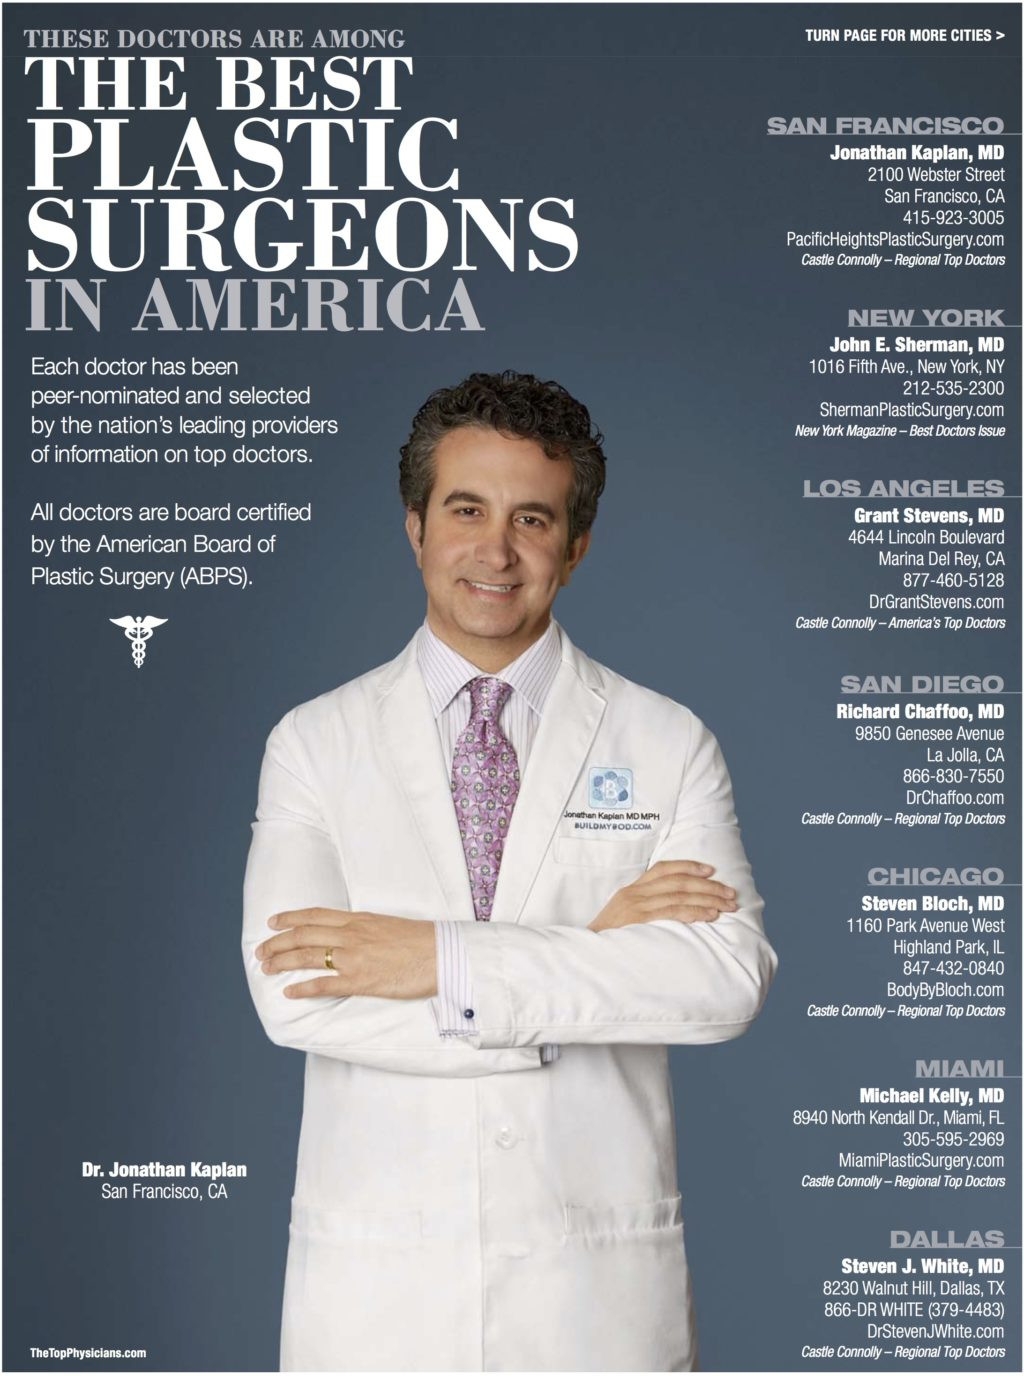 Dr Kaplan Among The Best Plastic Surgeons In America Pacific Heights Plastic Surgery